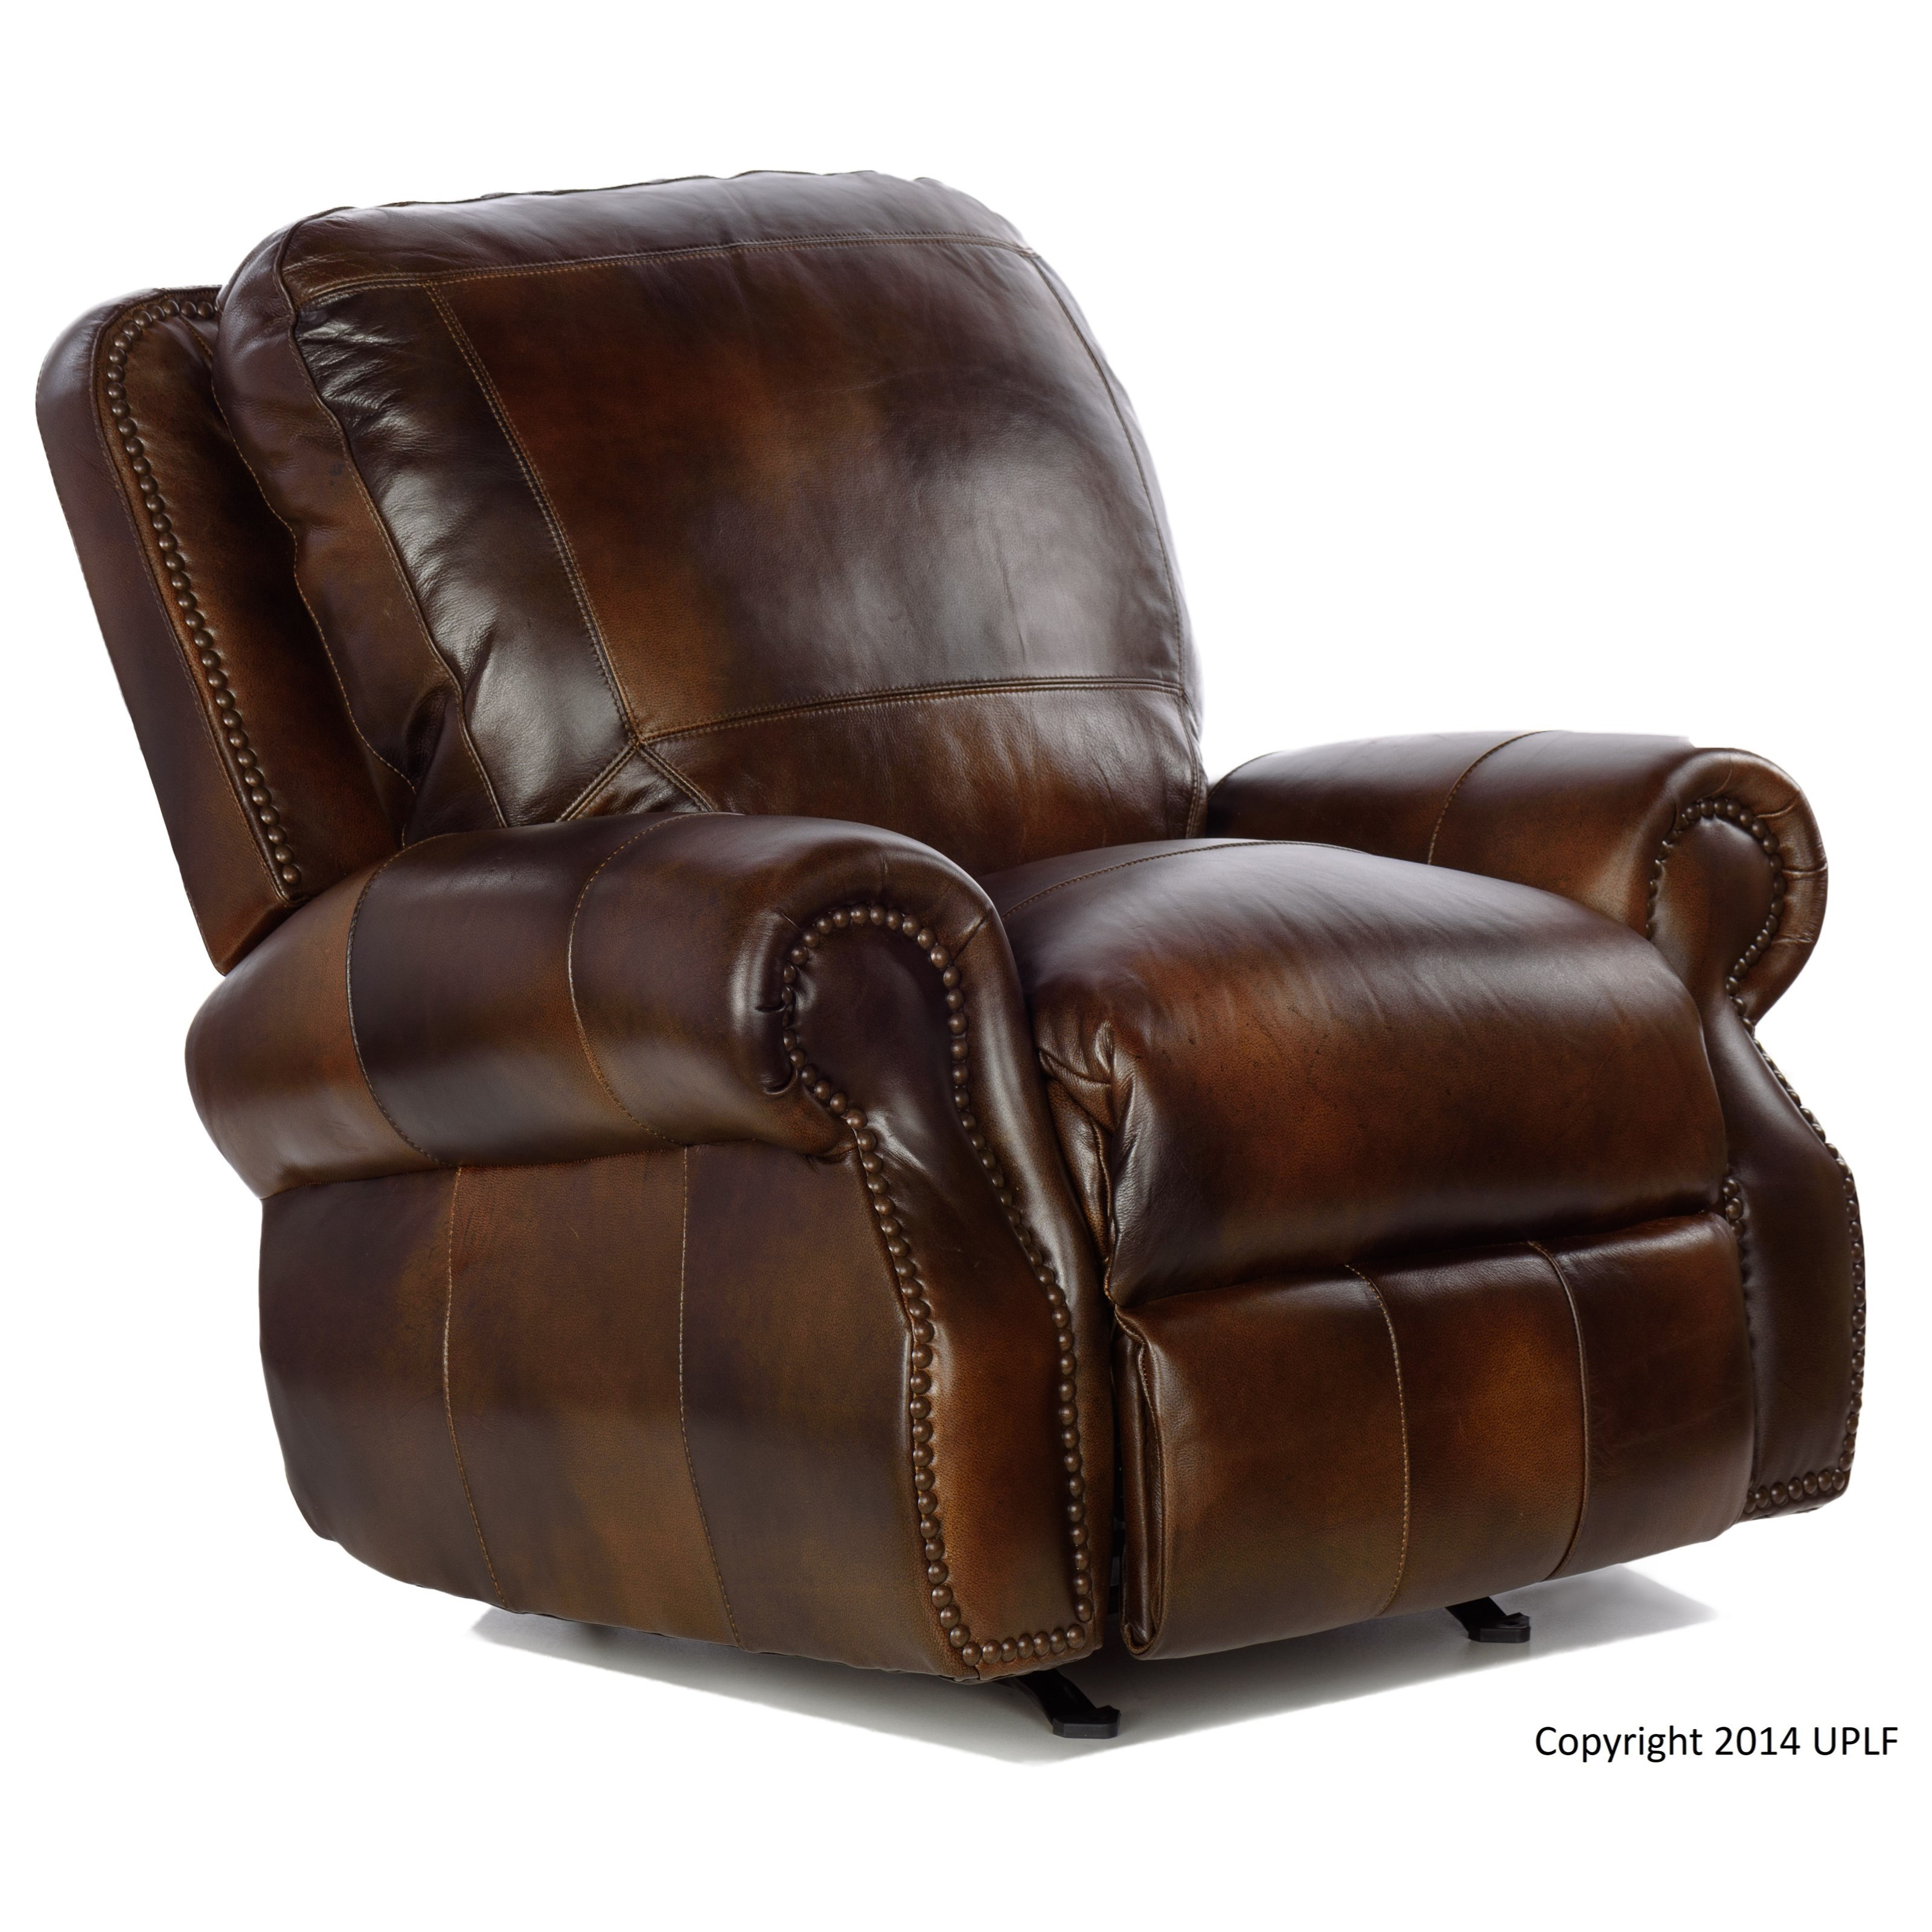 8755 Power Recliner by USA Premium Leather at Dream Home Interiors